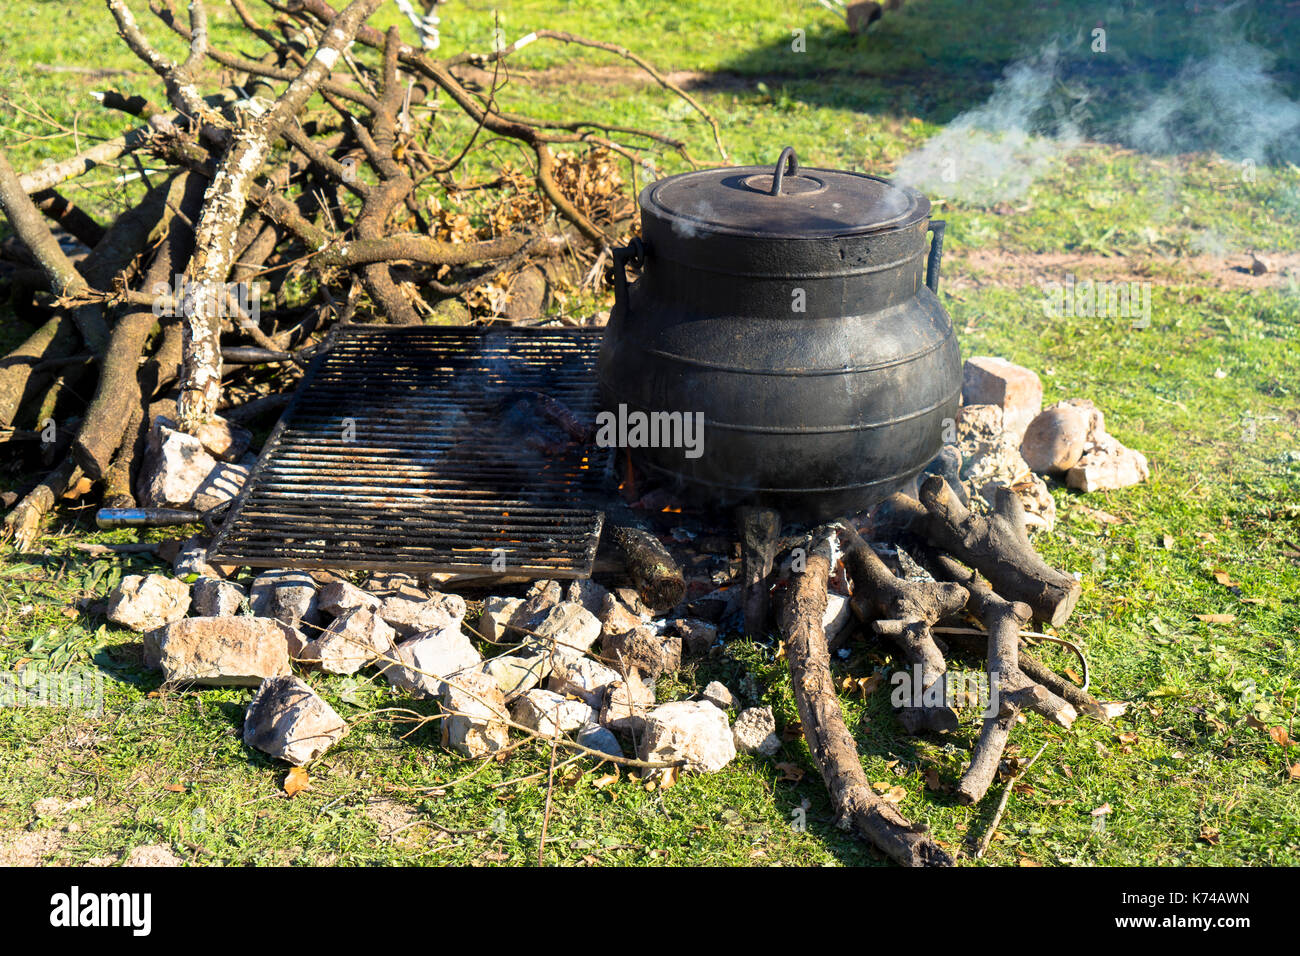 Cooking over an open fire using a metal cooking pot gently steaming on a wood burning campfire - Stock Image